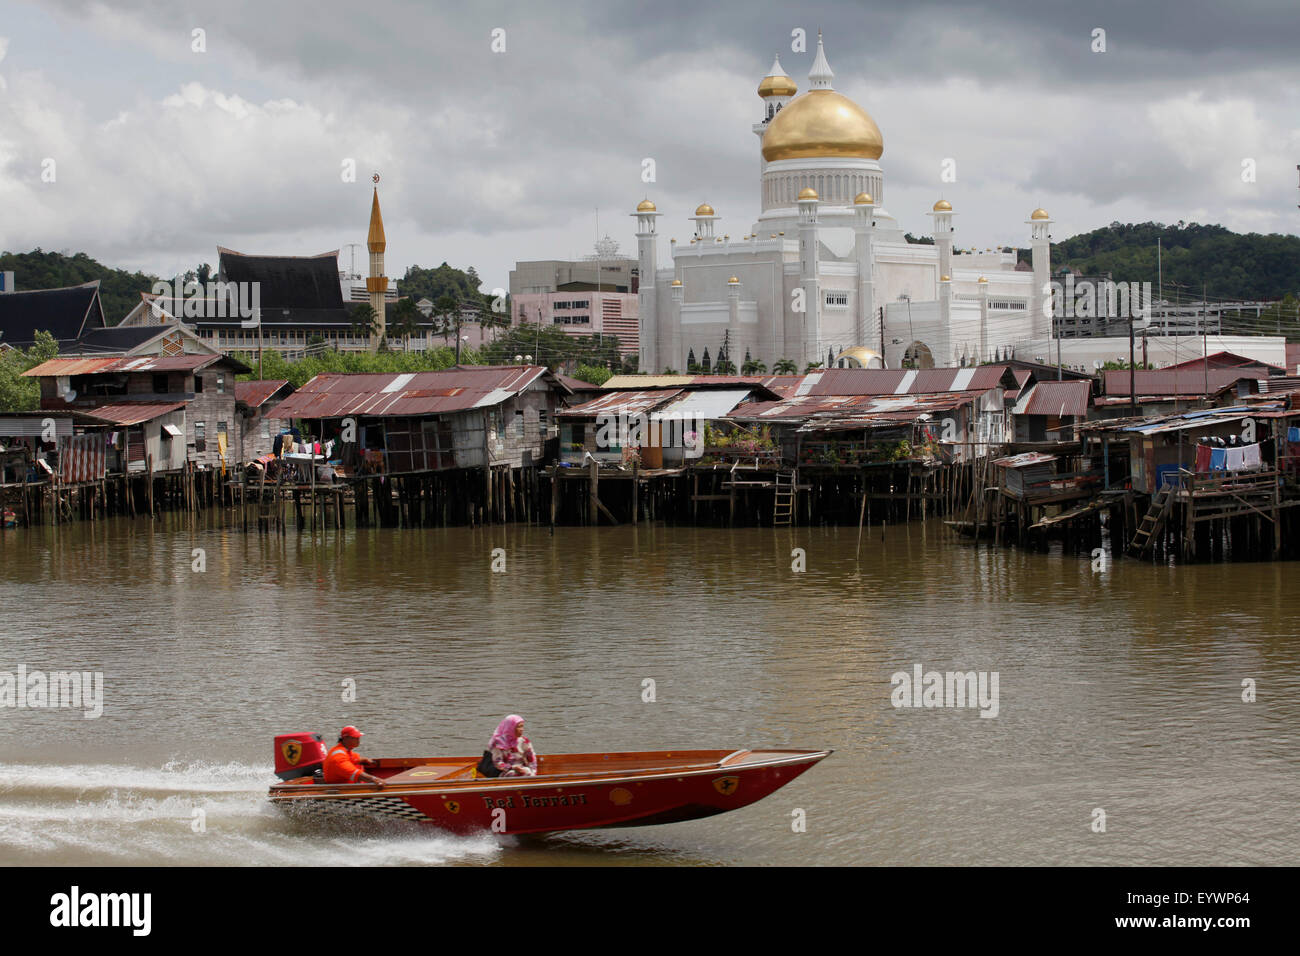 Boats past water village with Omar Ali Saifuddien mosque in Bandar Seri Begawan, Brunei, Southeast Asia, Asia - Stock Image